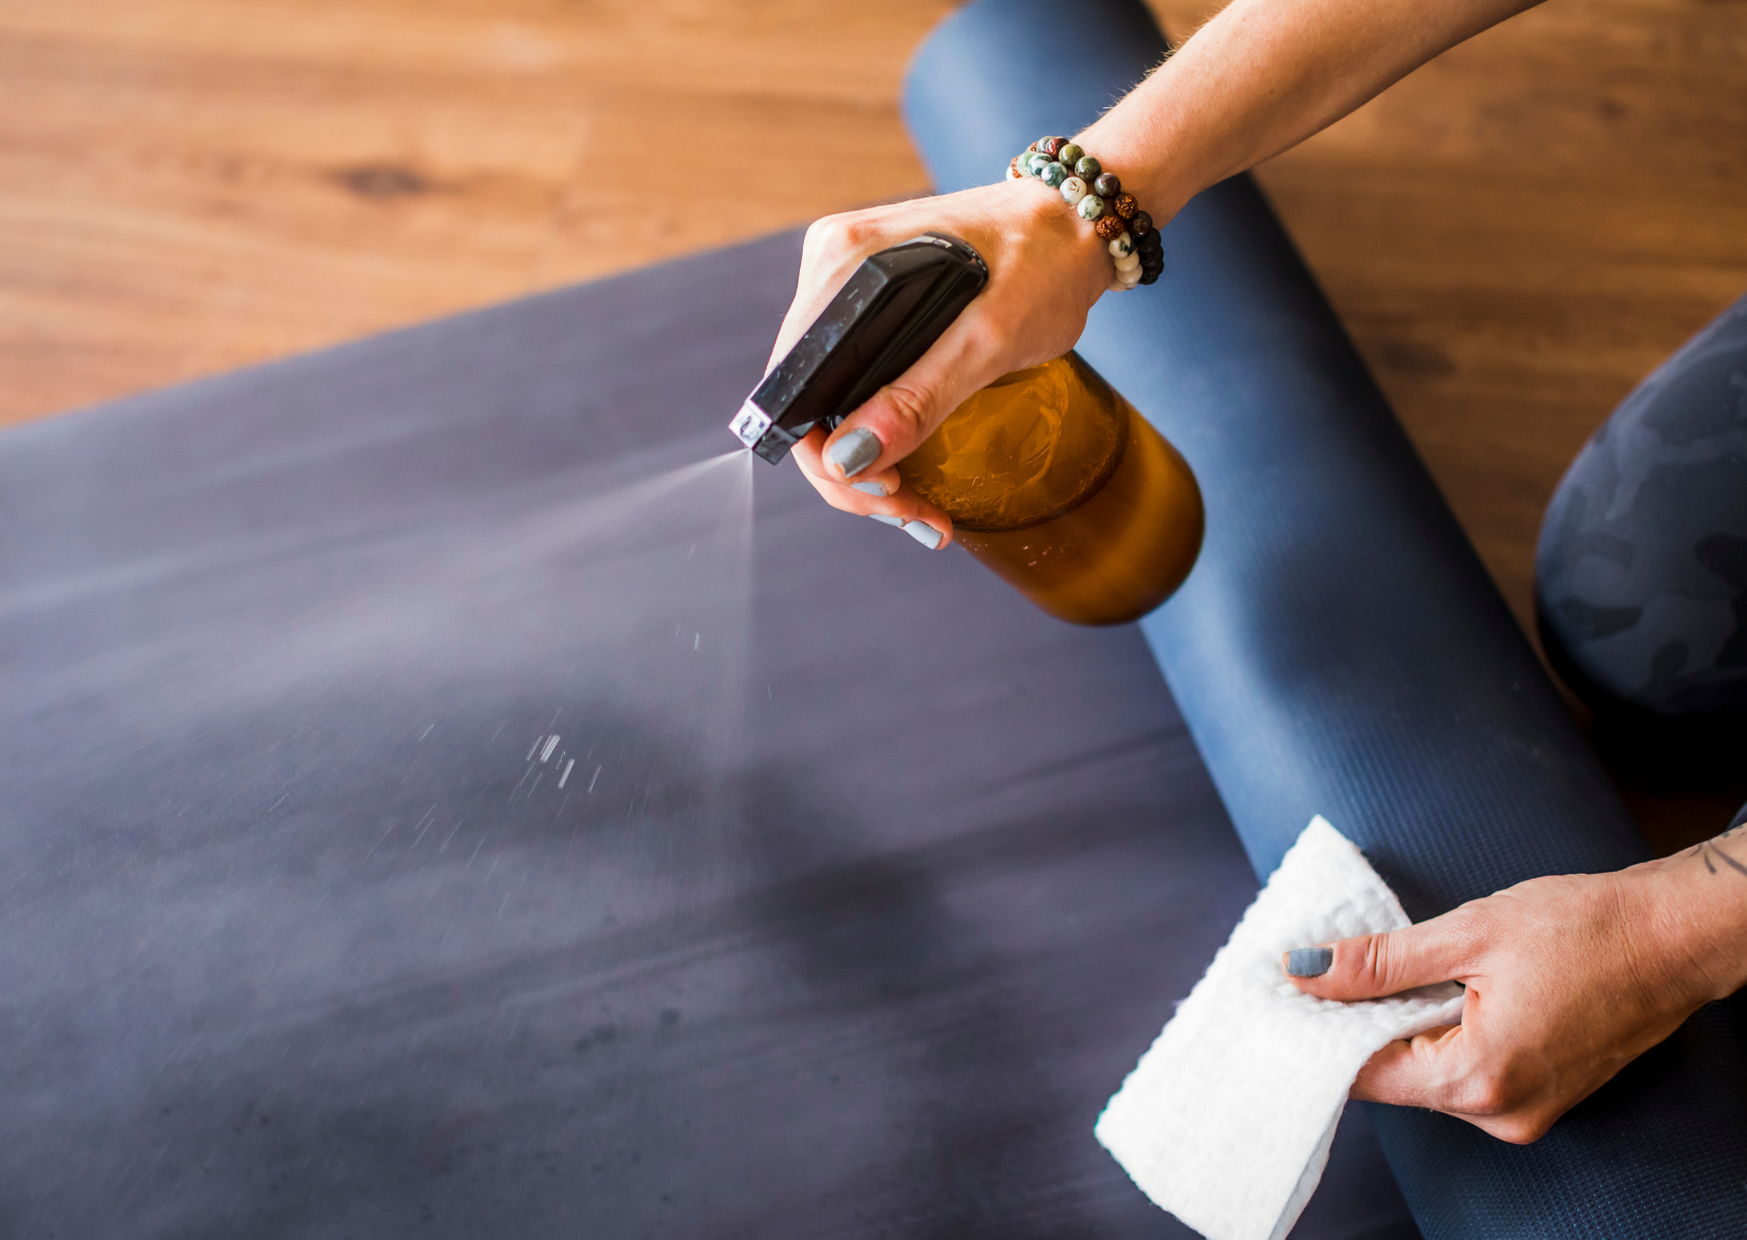 disinfecting a yoga mat with alcohol